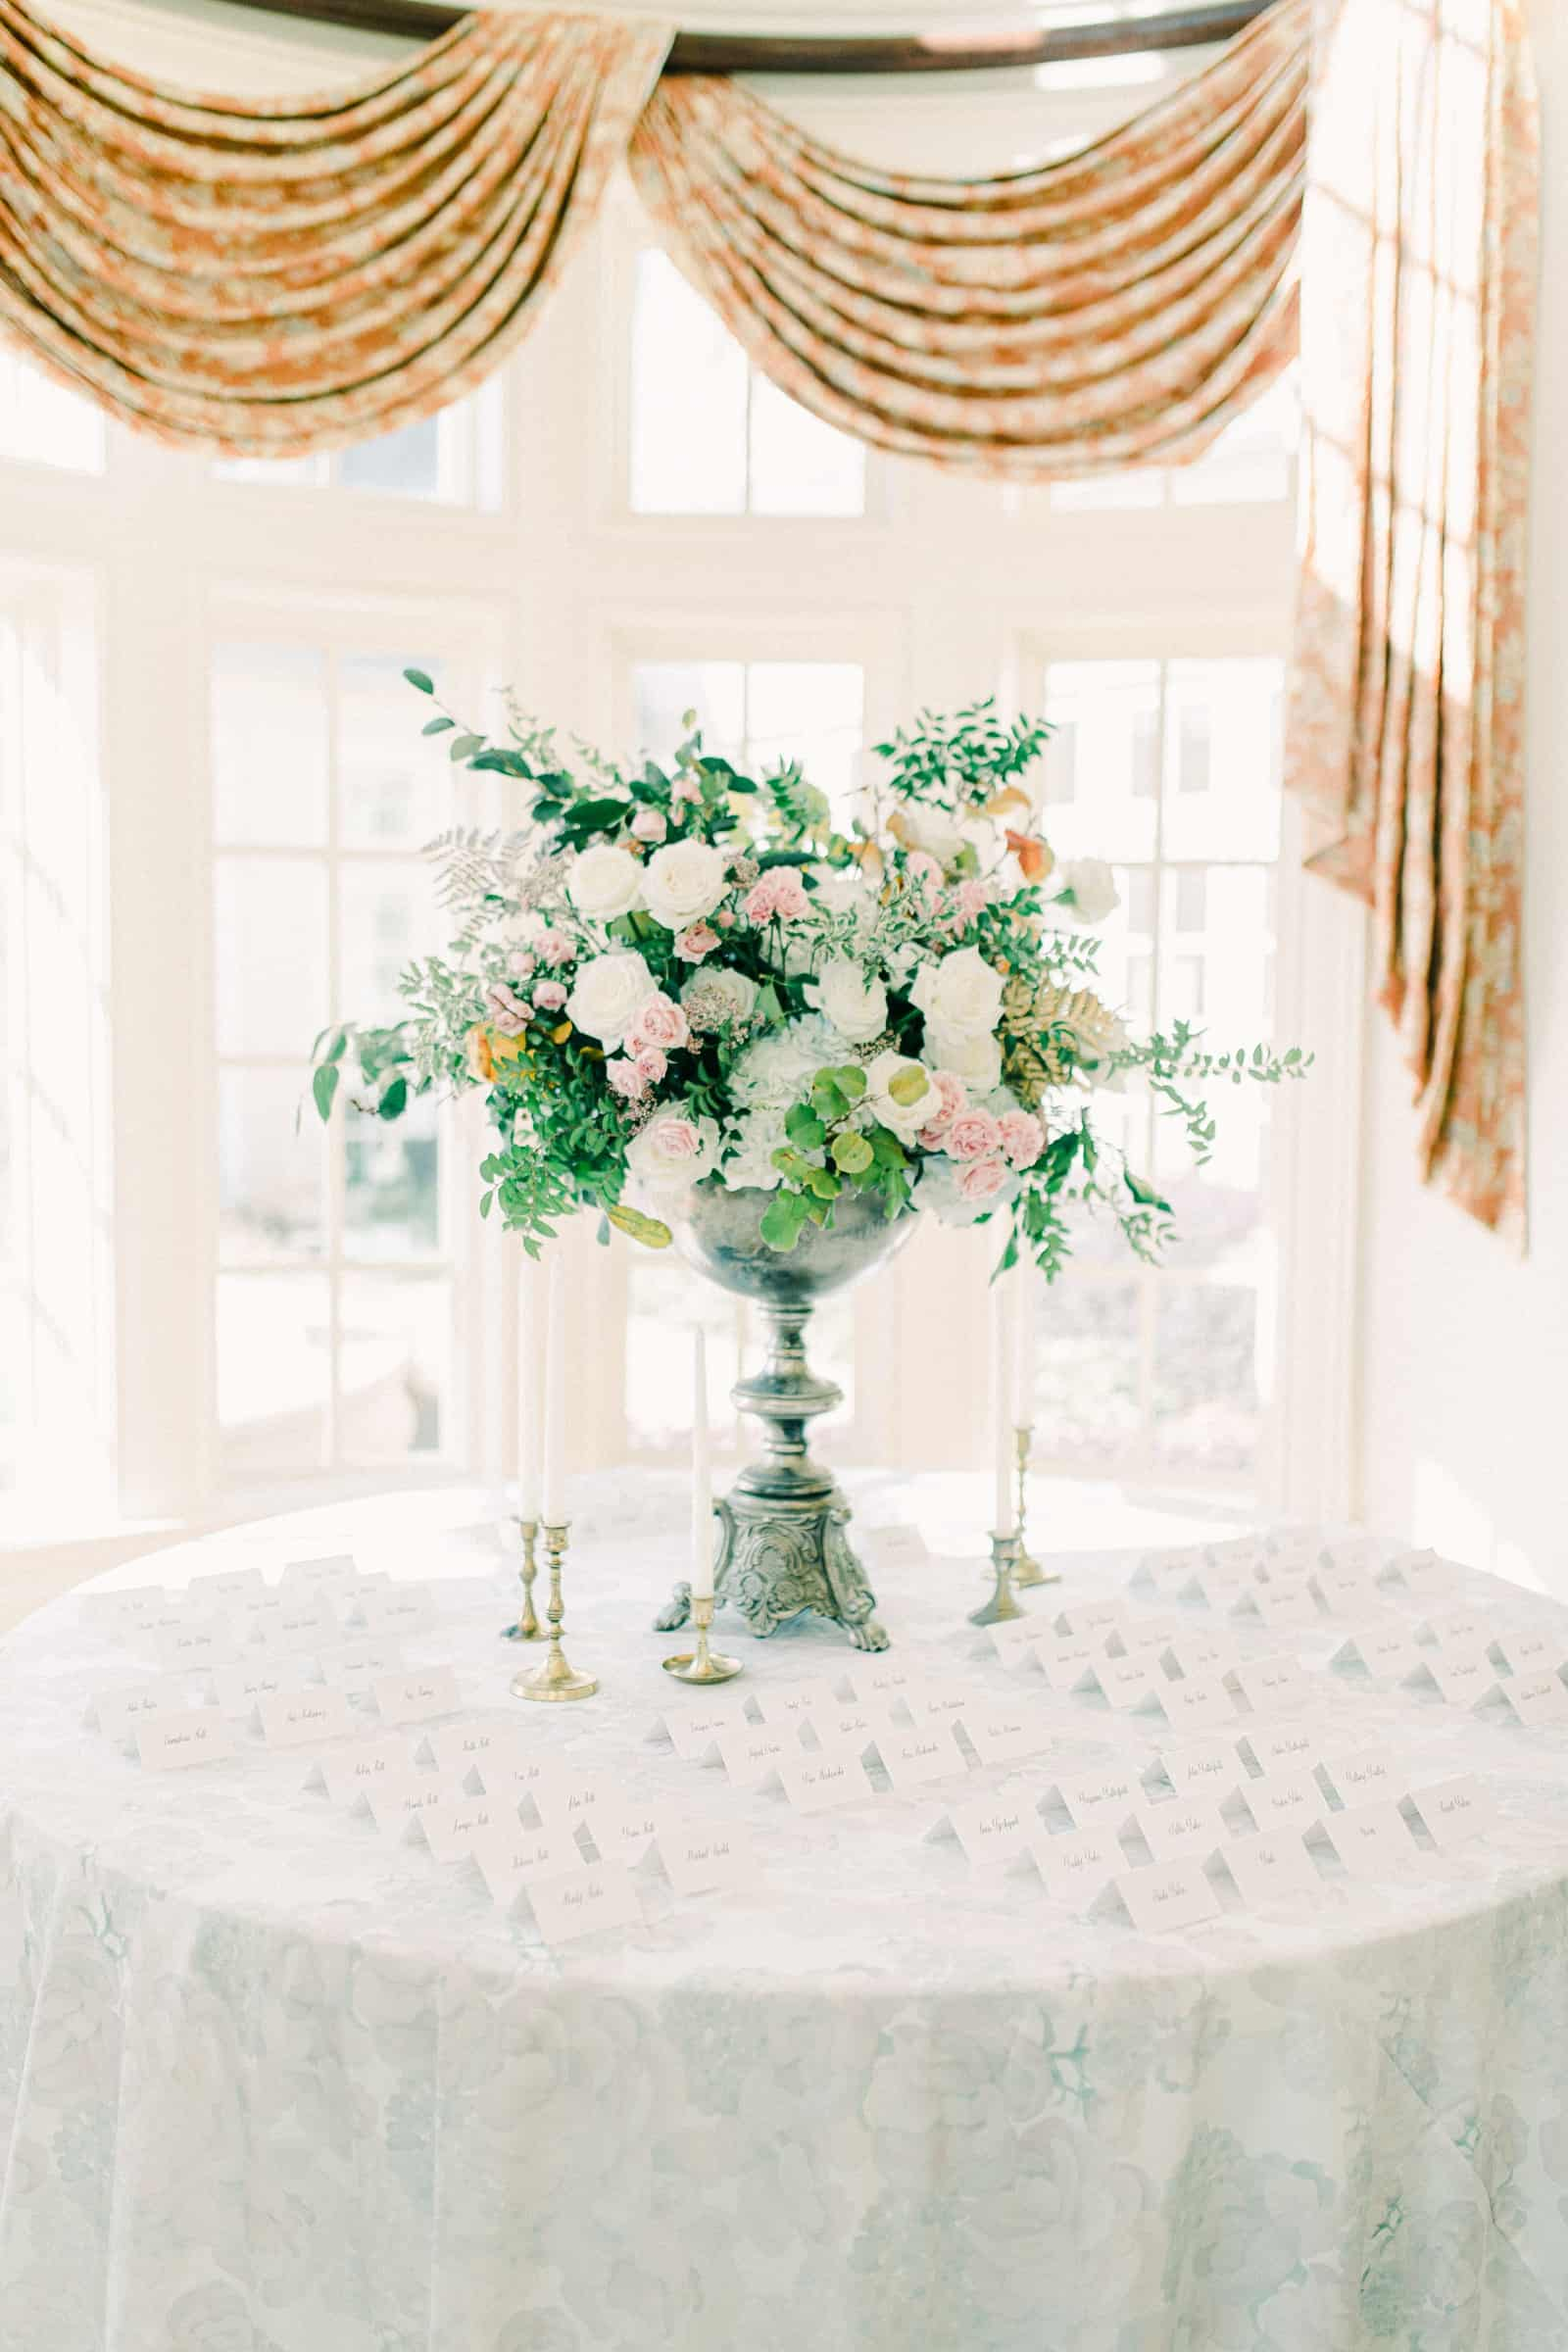 Tall wedding centerpiece with pink and white flowers, calligraphy place cards on light blue tablecloth